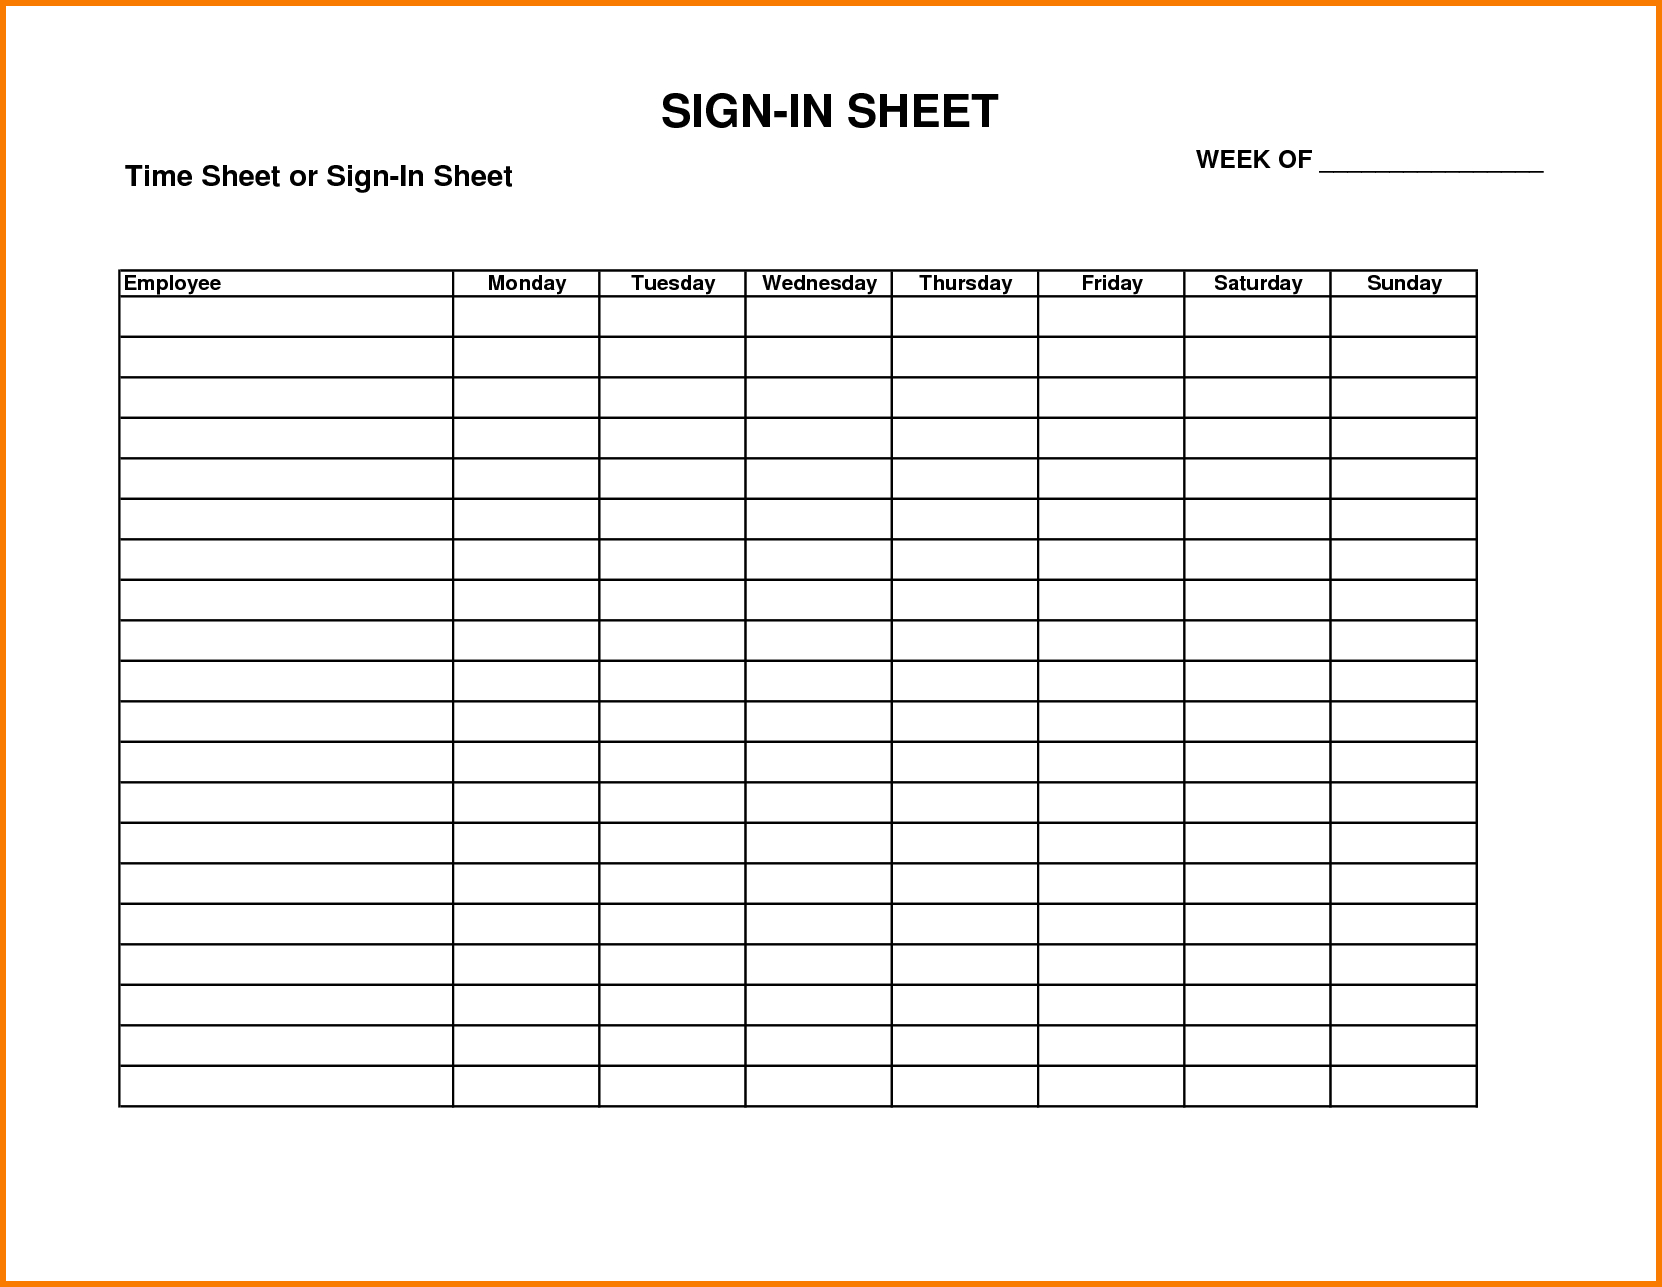 Pinjoe Dupin On Storms Transportation | Sign In Sheet Saturday Thur Friday Schedule